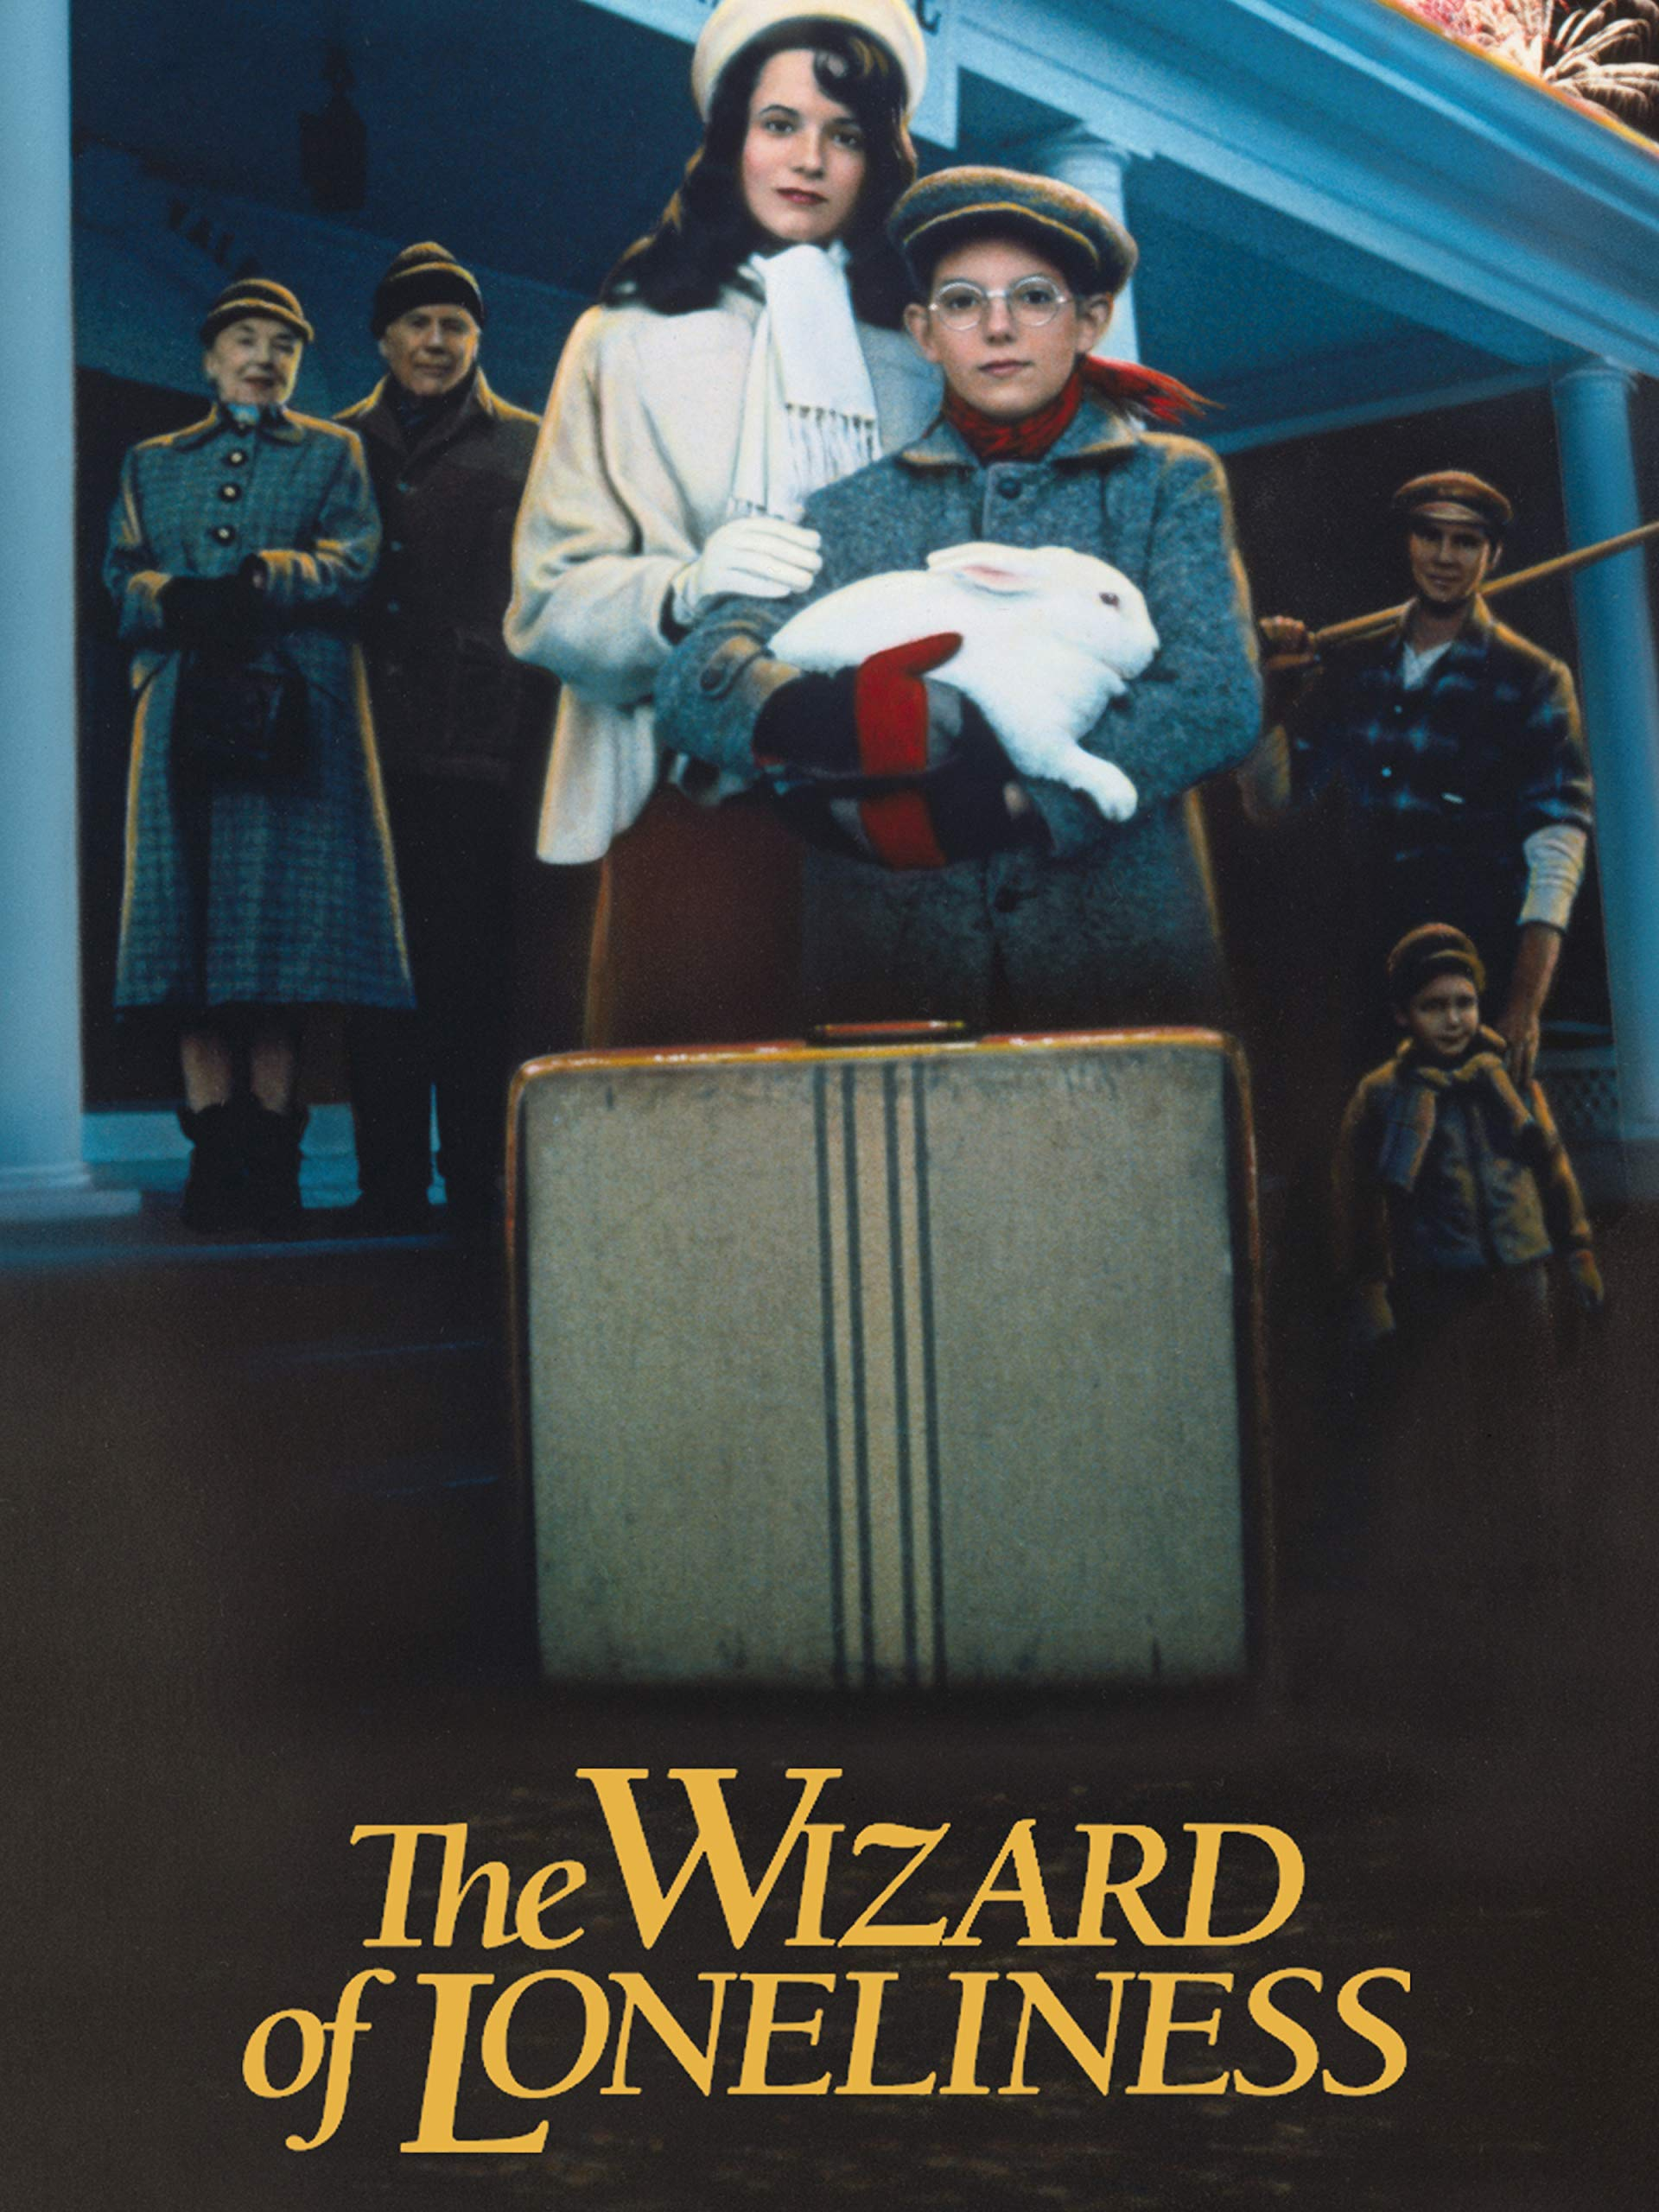 Watch Wizard of Loneliness, The | Prime Video